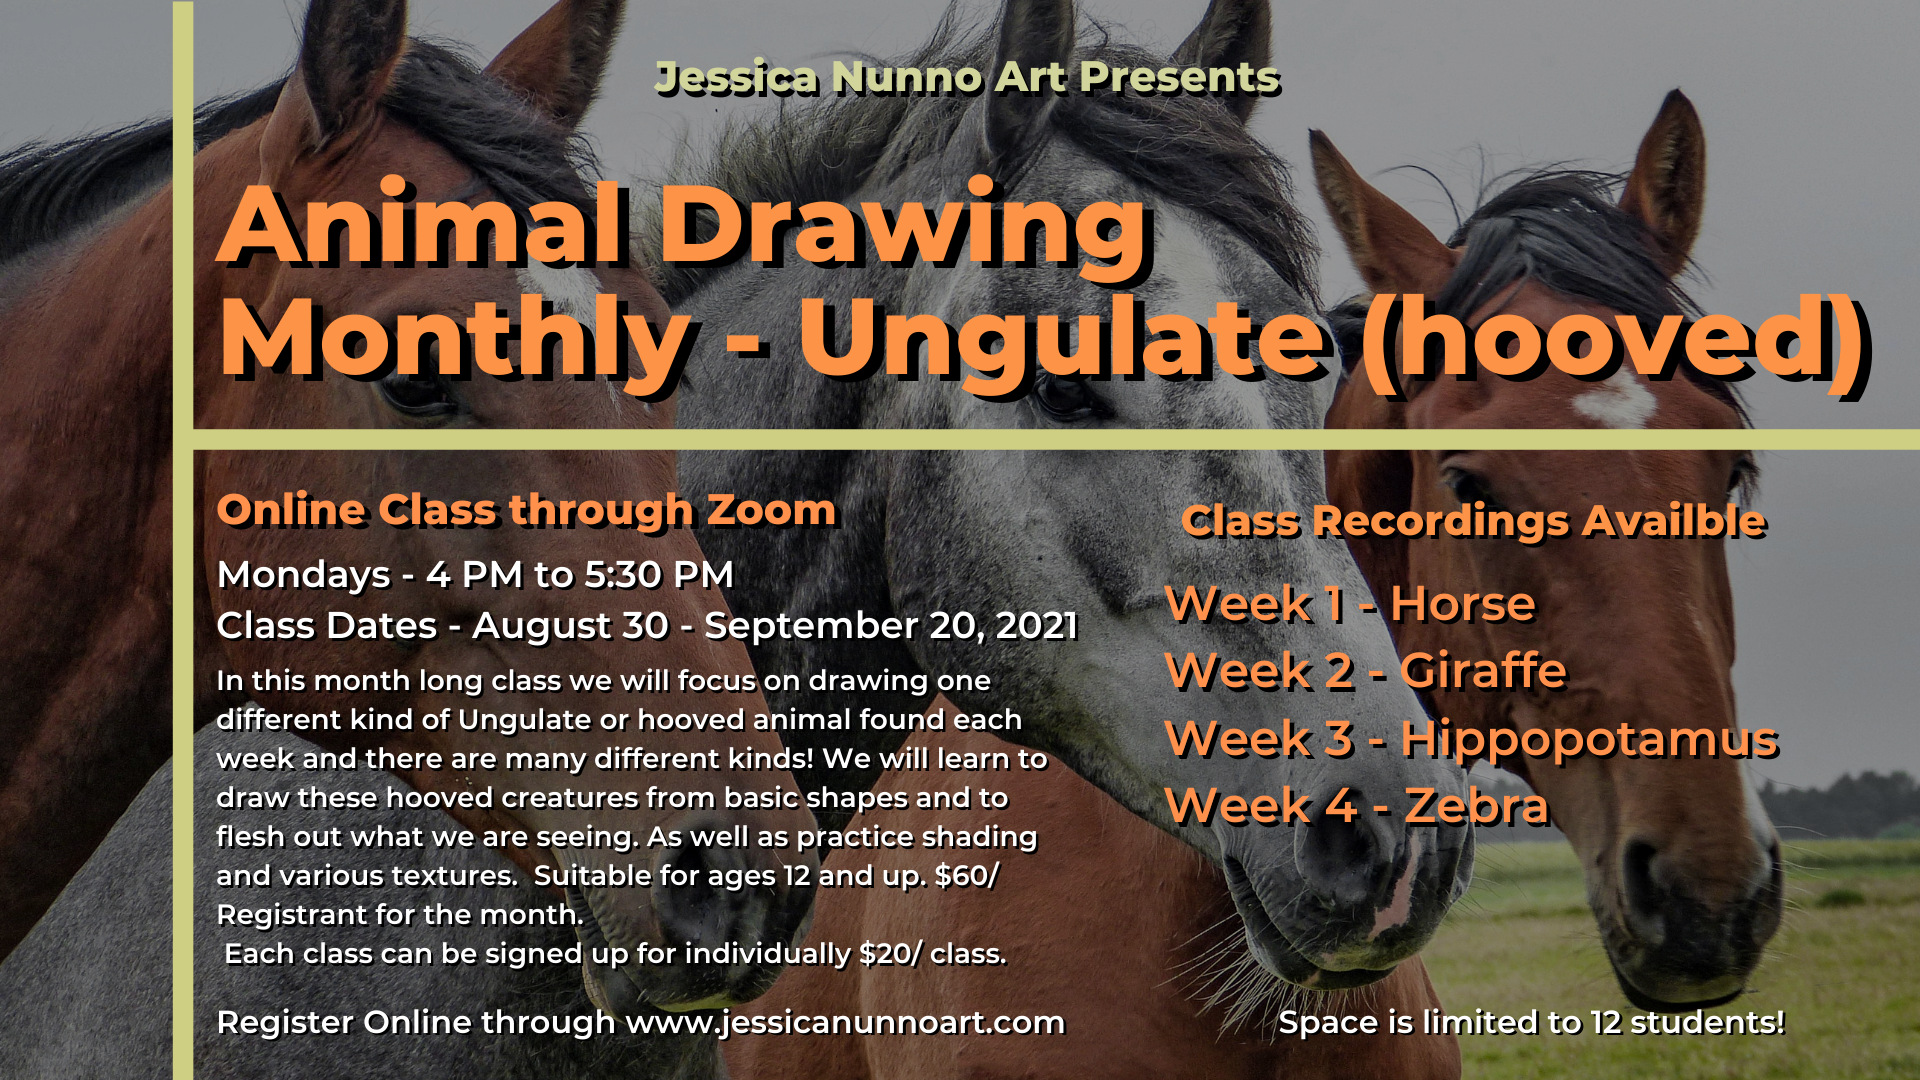 Animal Drawing Monthly - Ungulate